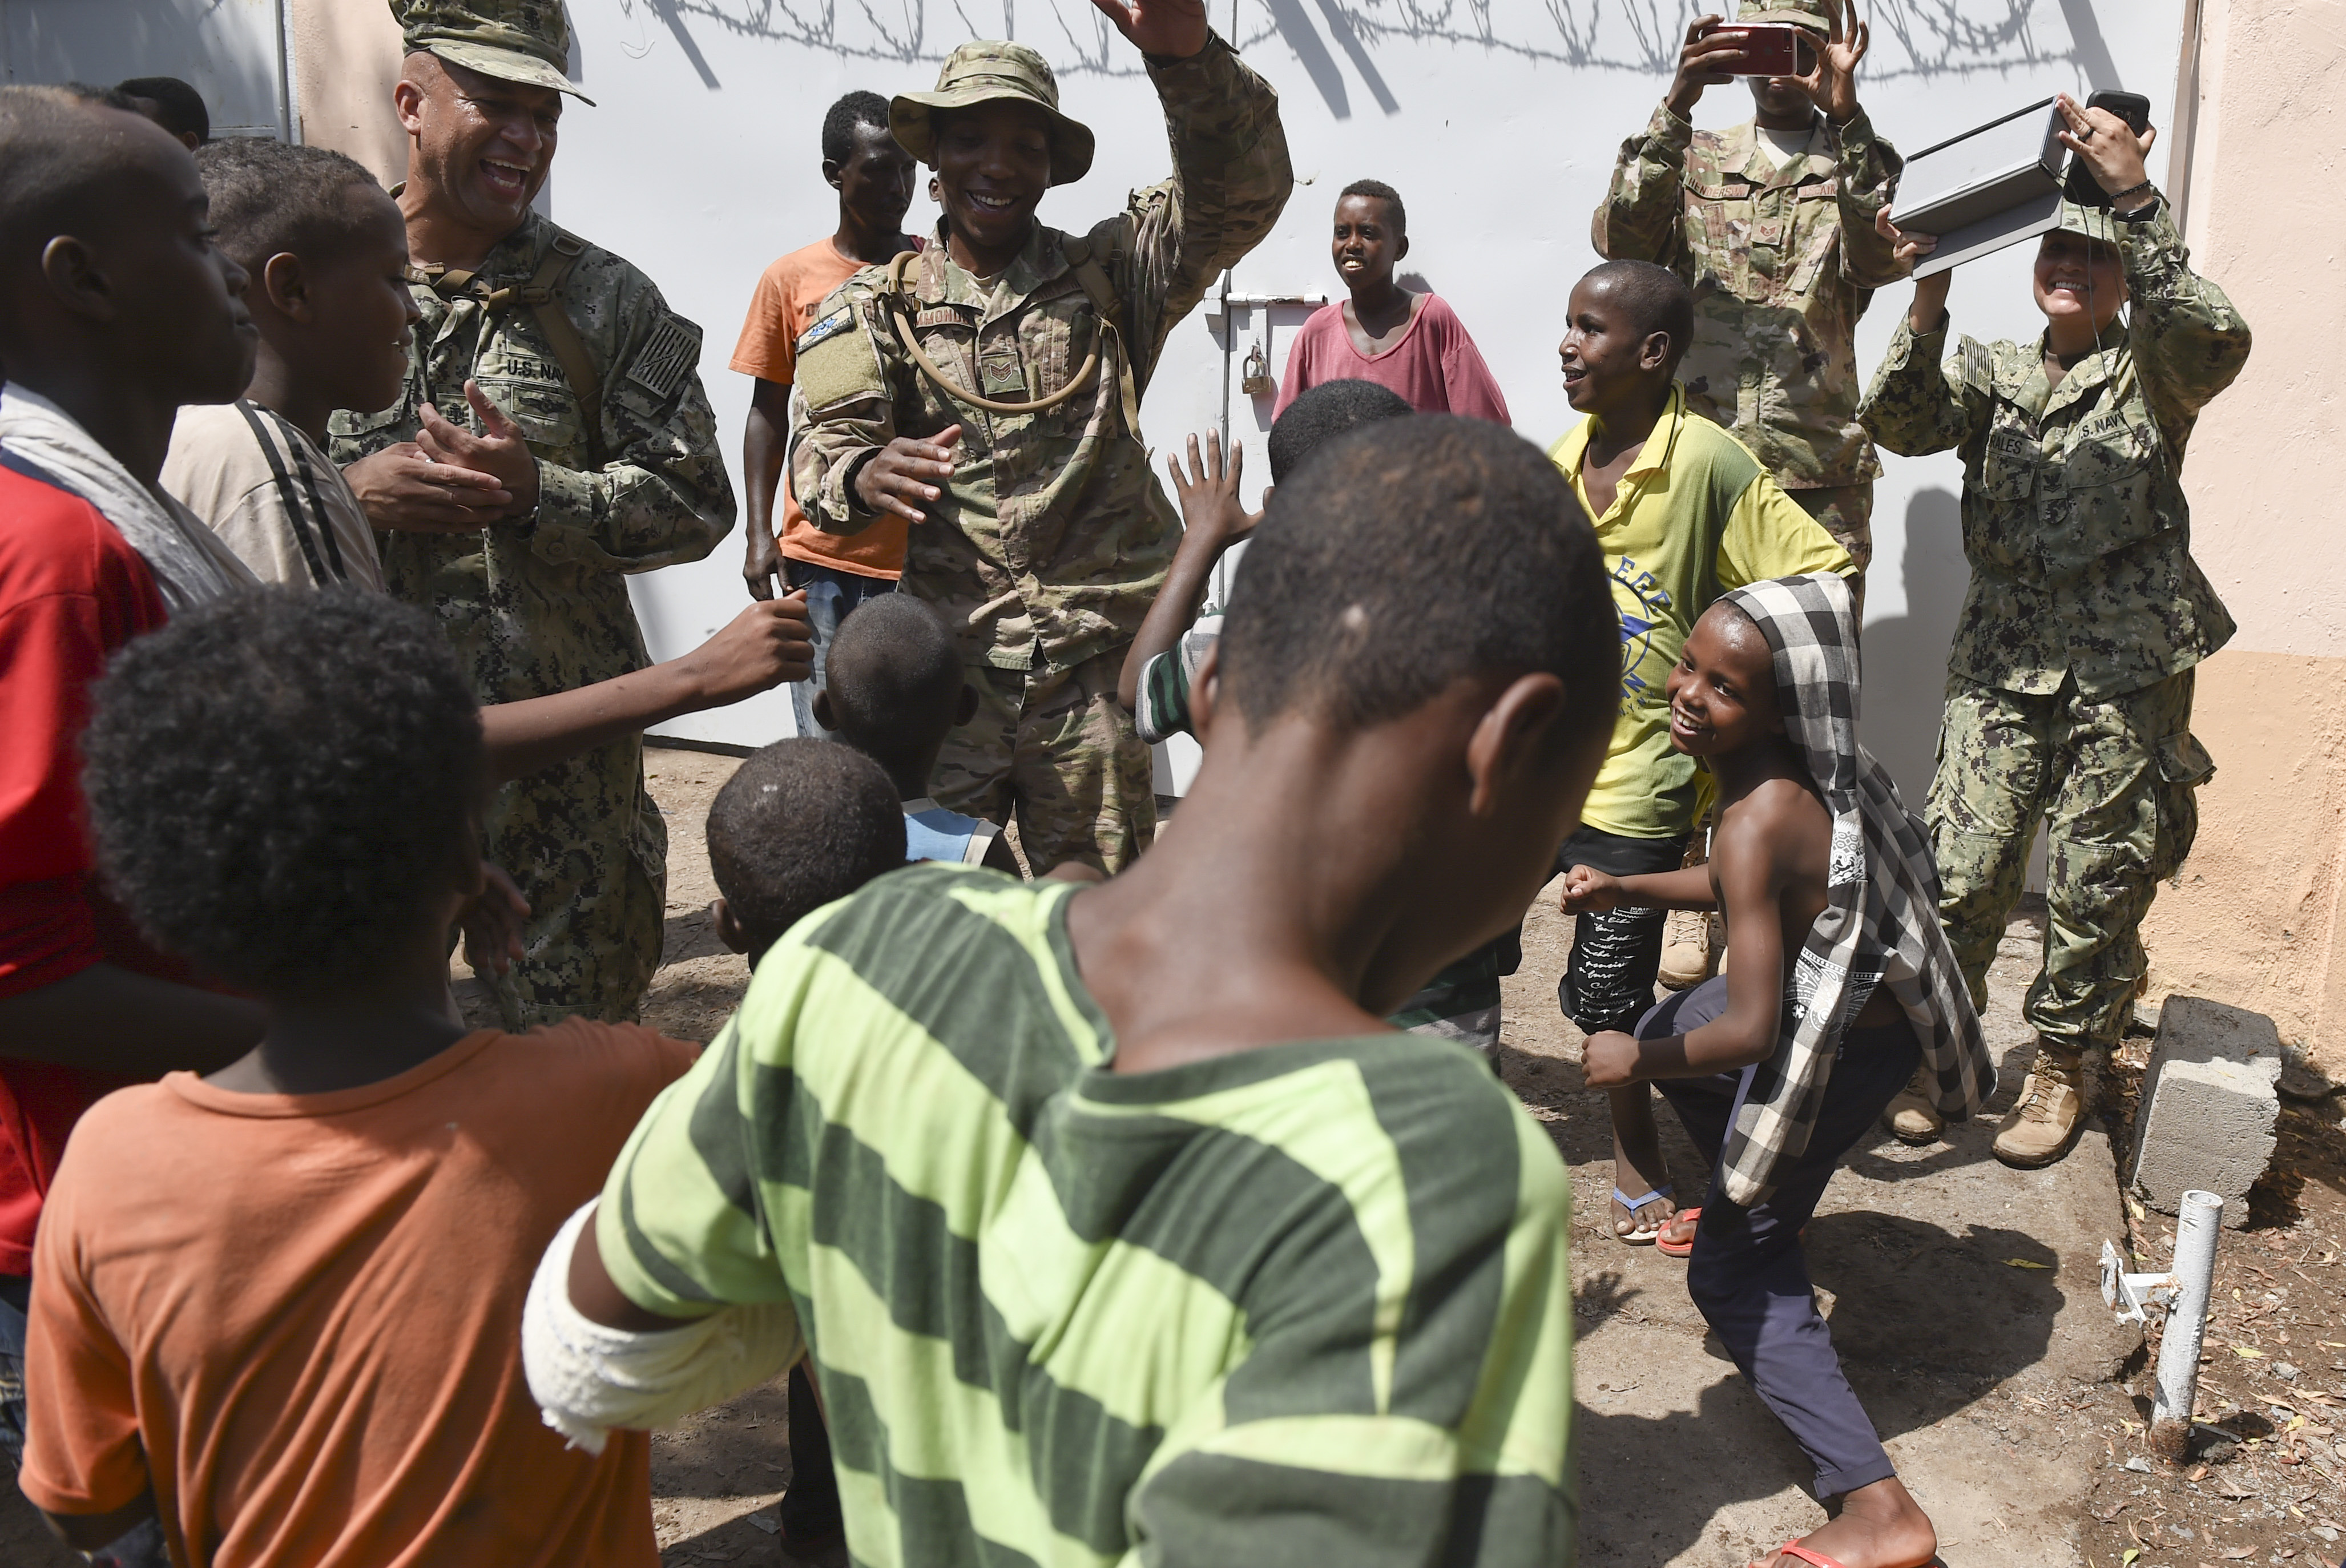 U.S. service members from Camp Lemonnier dance with children from Caritas Djibouti in downtown Djibouti, May 16, 2017. U.S. Service members assigned to the Combined joint Task Force - Horn of Africa, periodically visit with the mission to donate food items, toys, clothing and supplies. (U.S. Air Force photo by Eboni Prince)